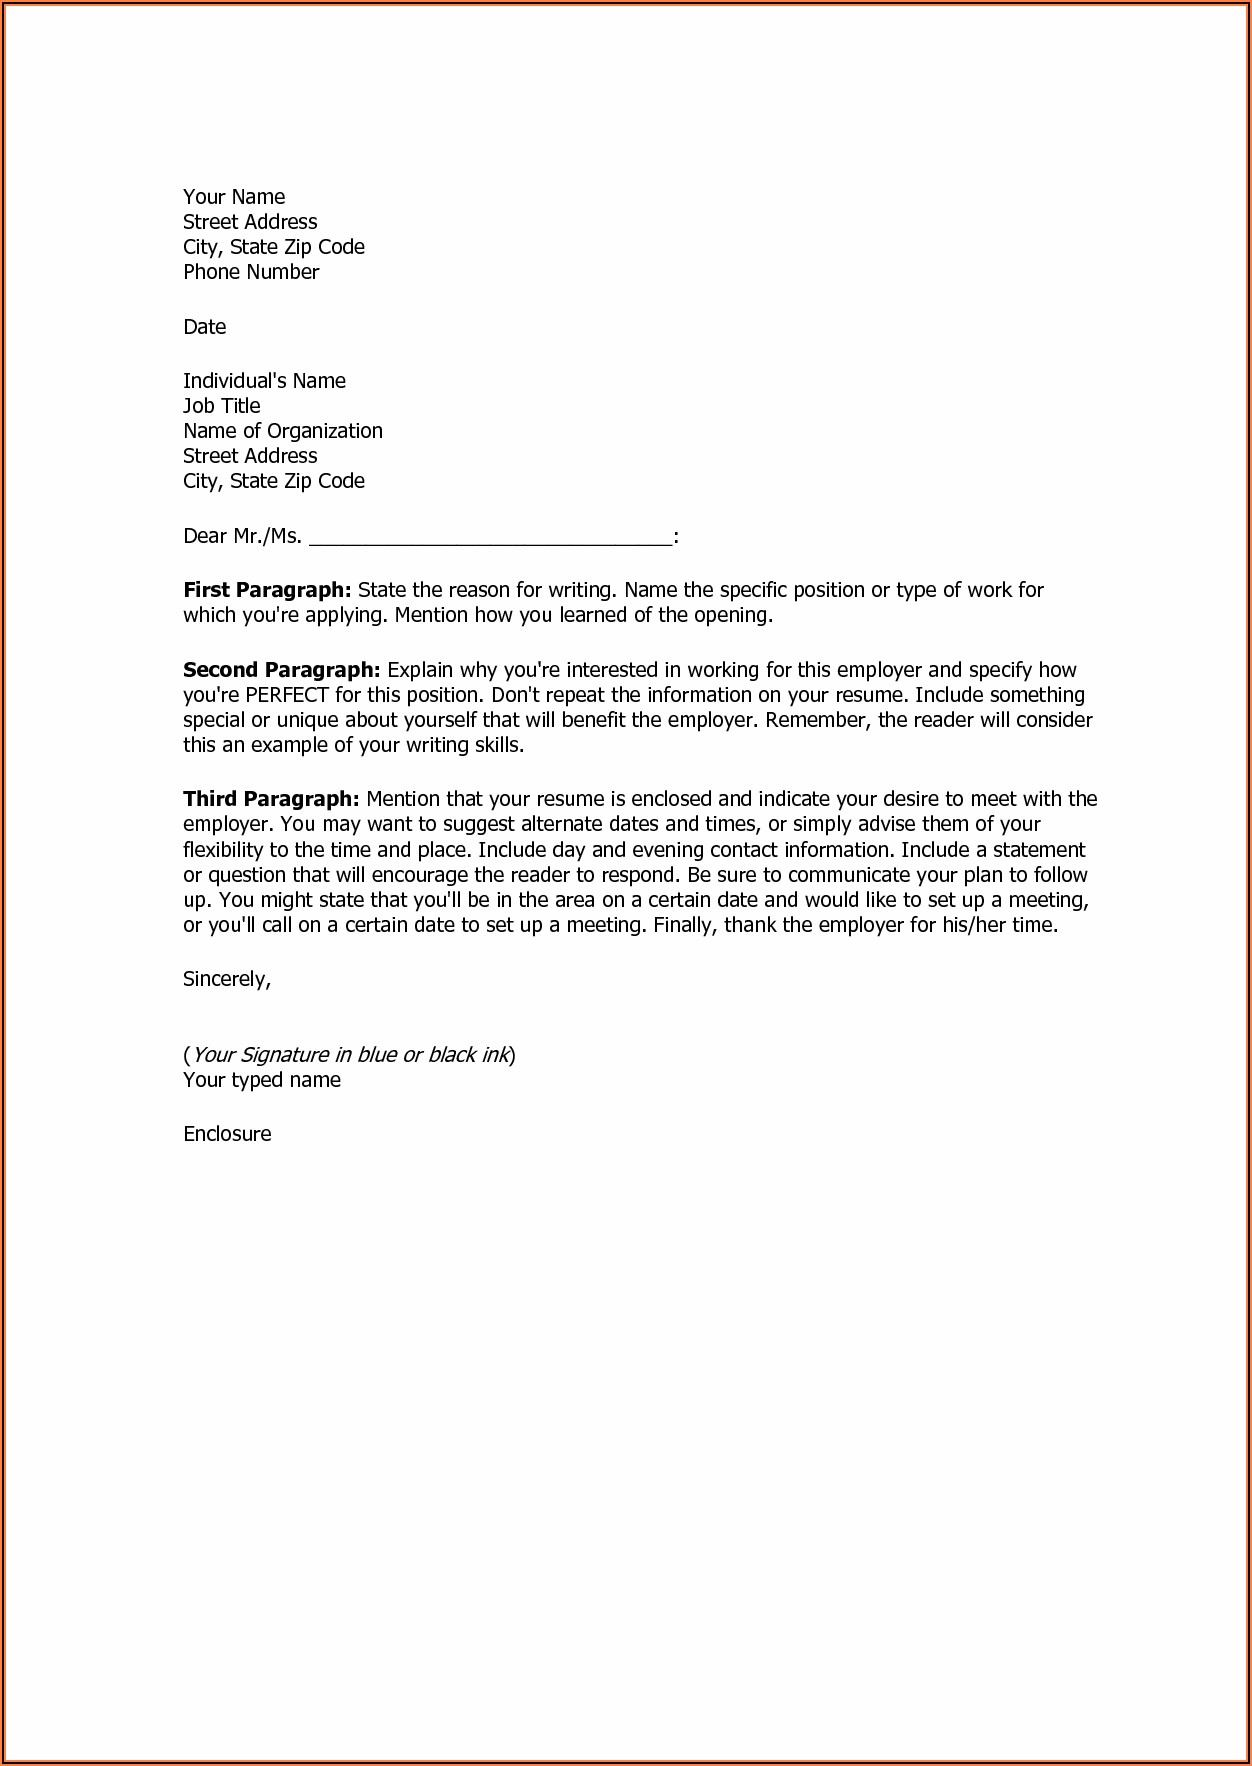 Examples Of Basic Cover Letters For Resumes